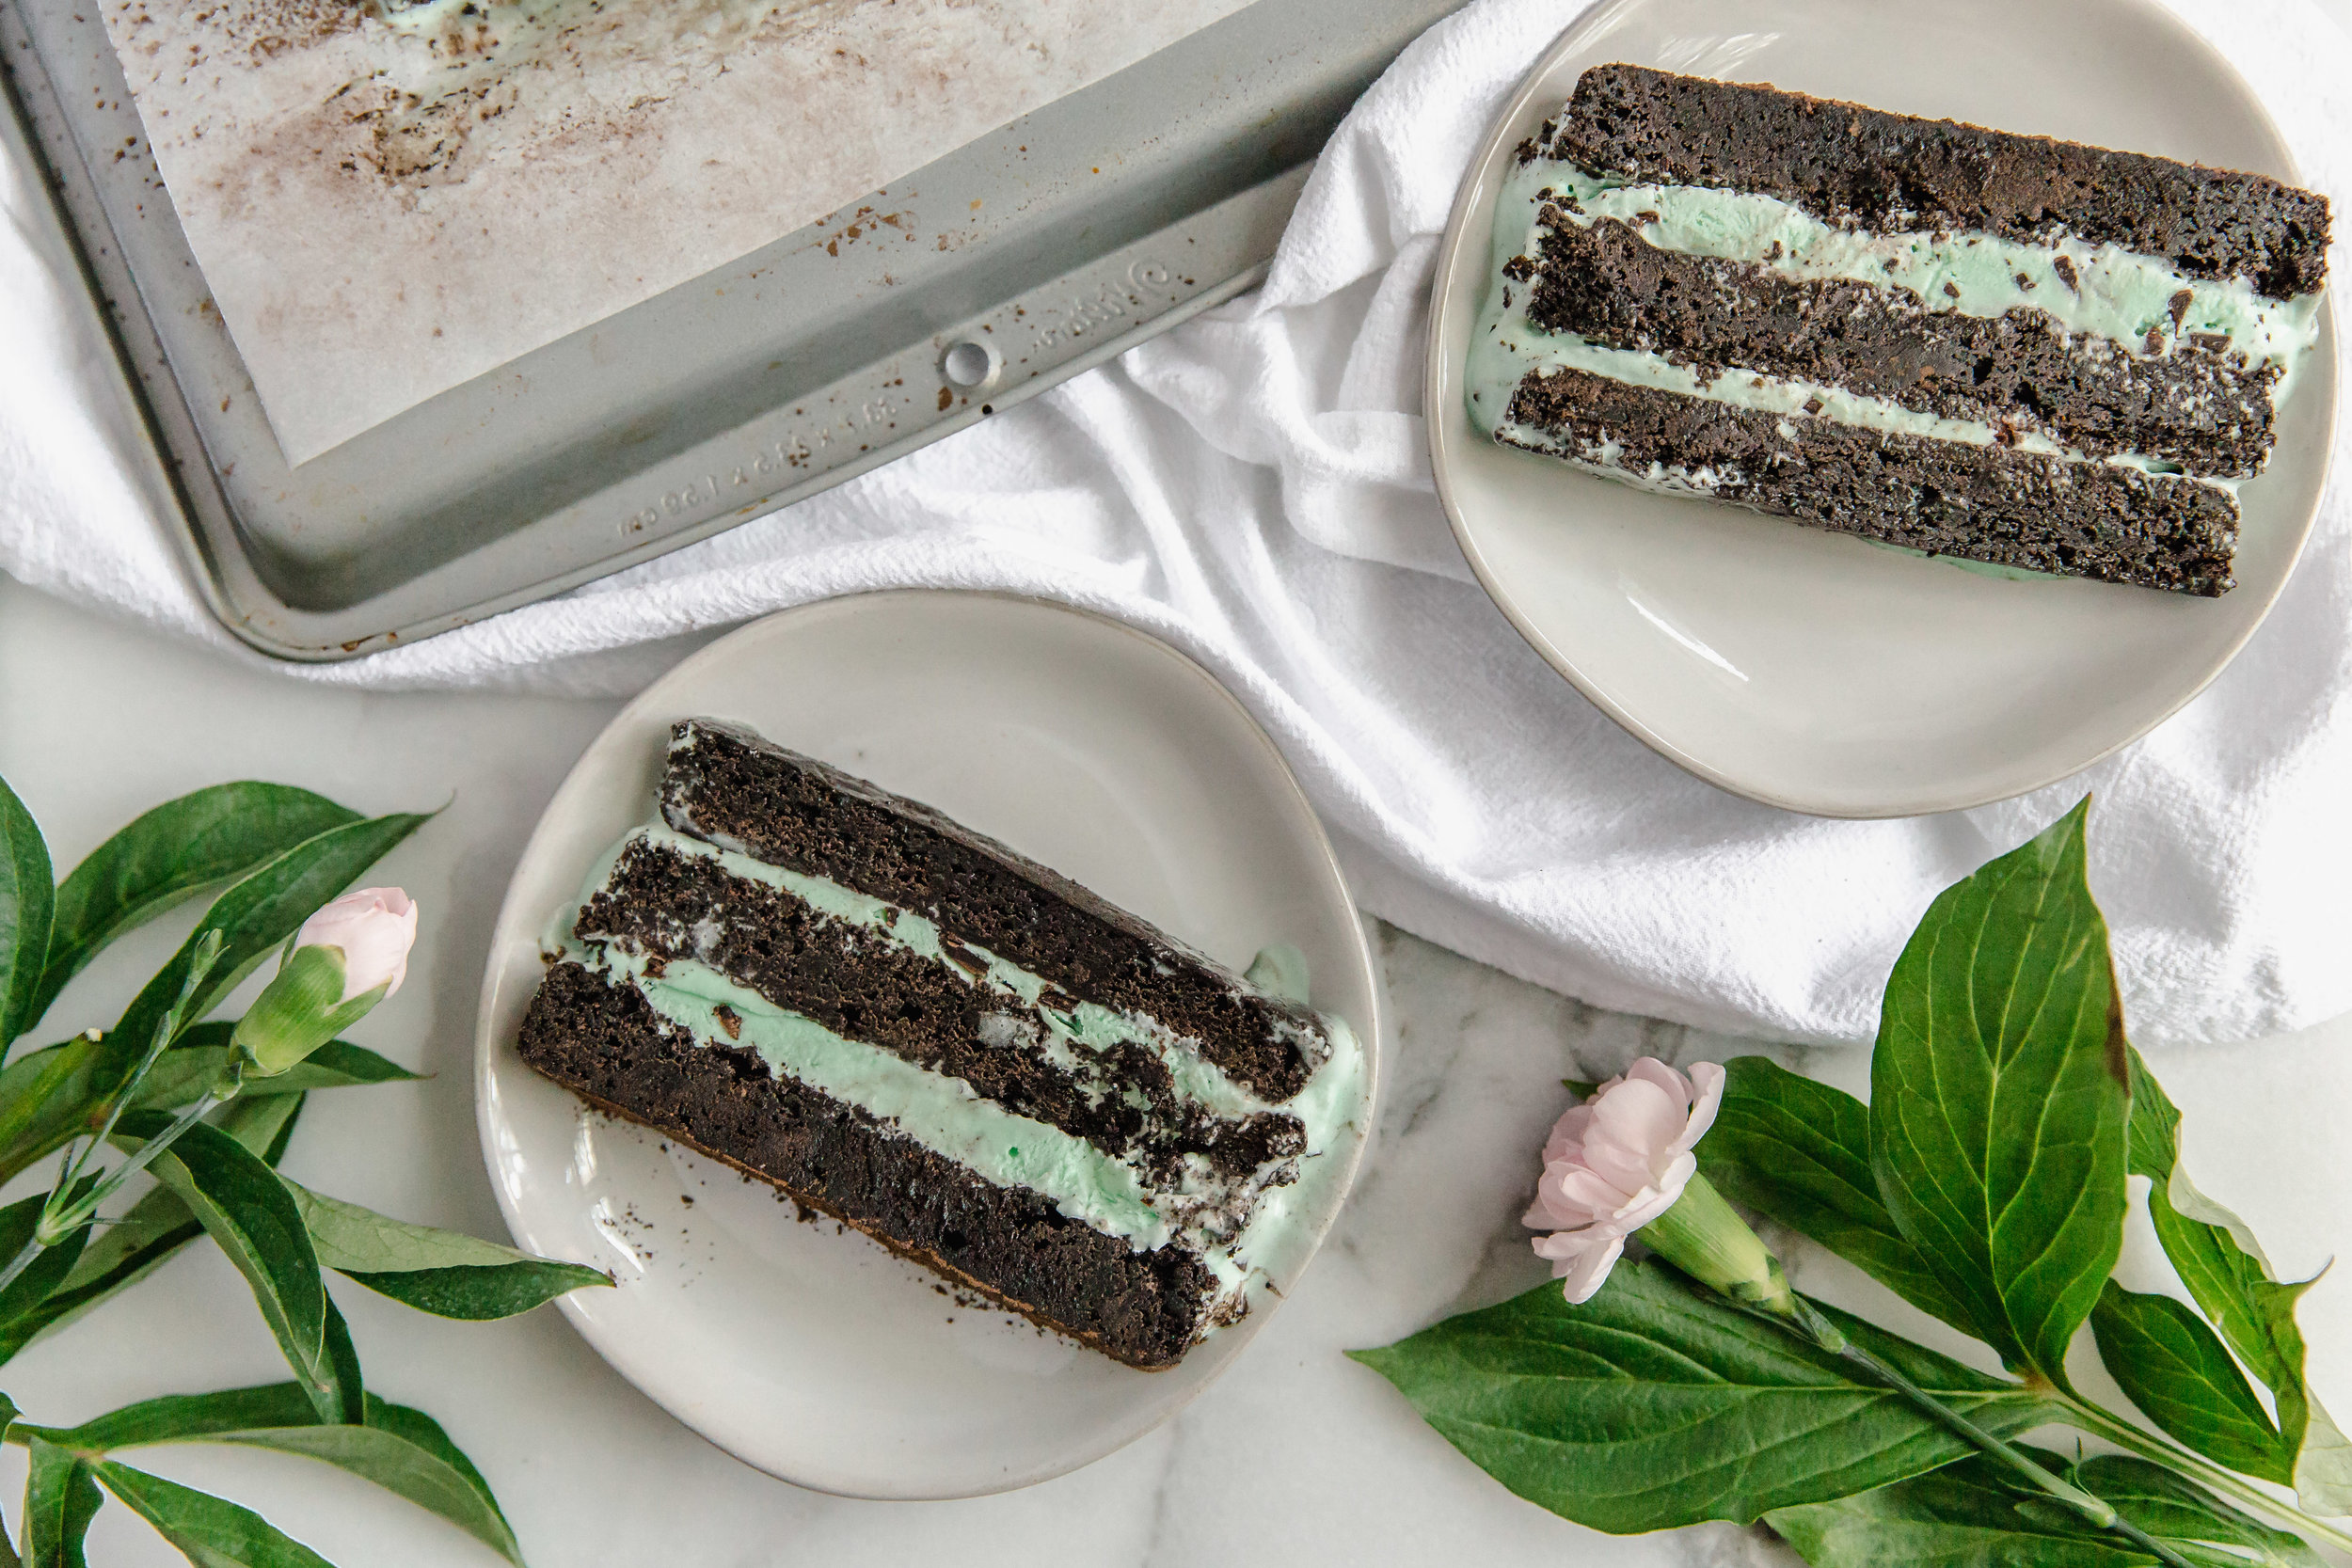 mint-ice-cream-brownie-cake-8.jpg